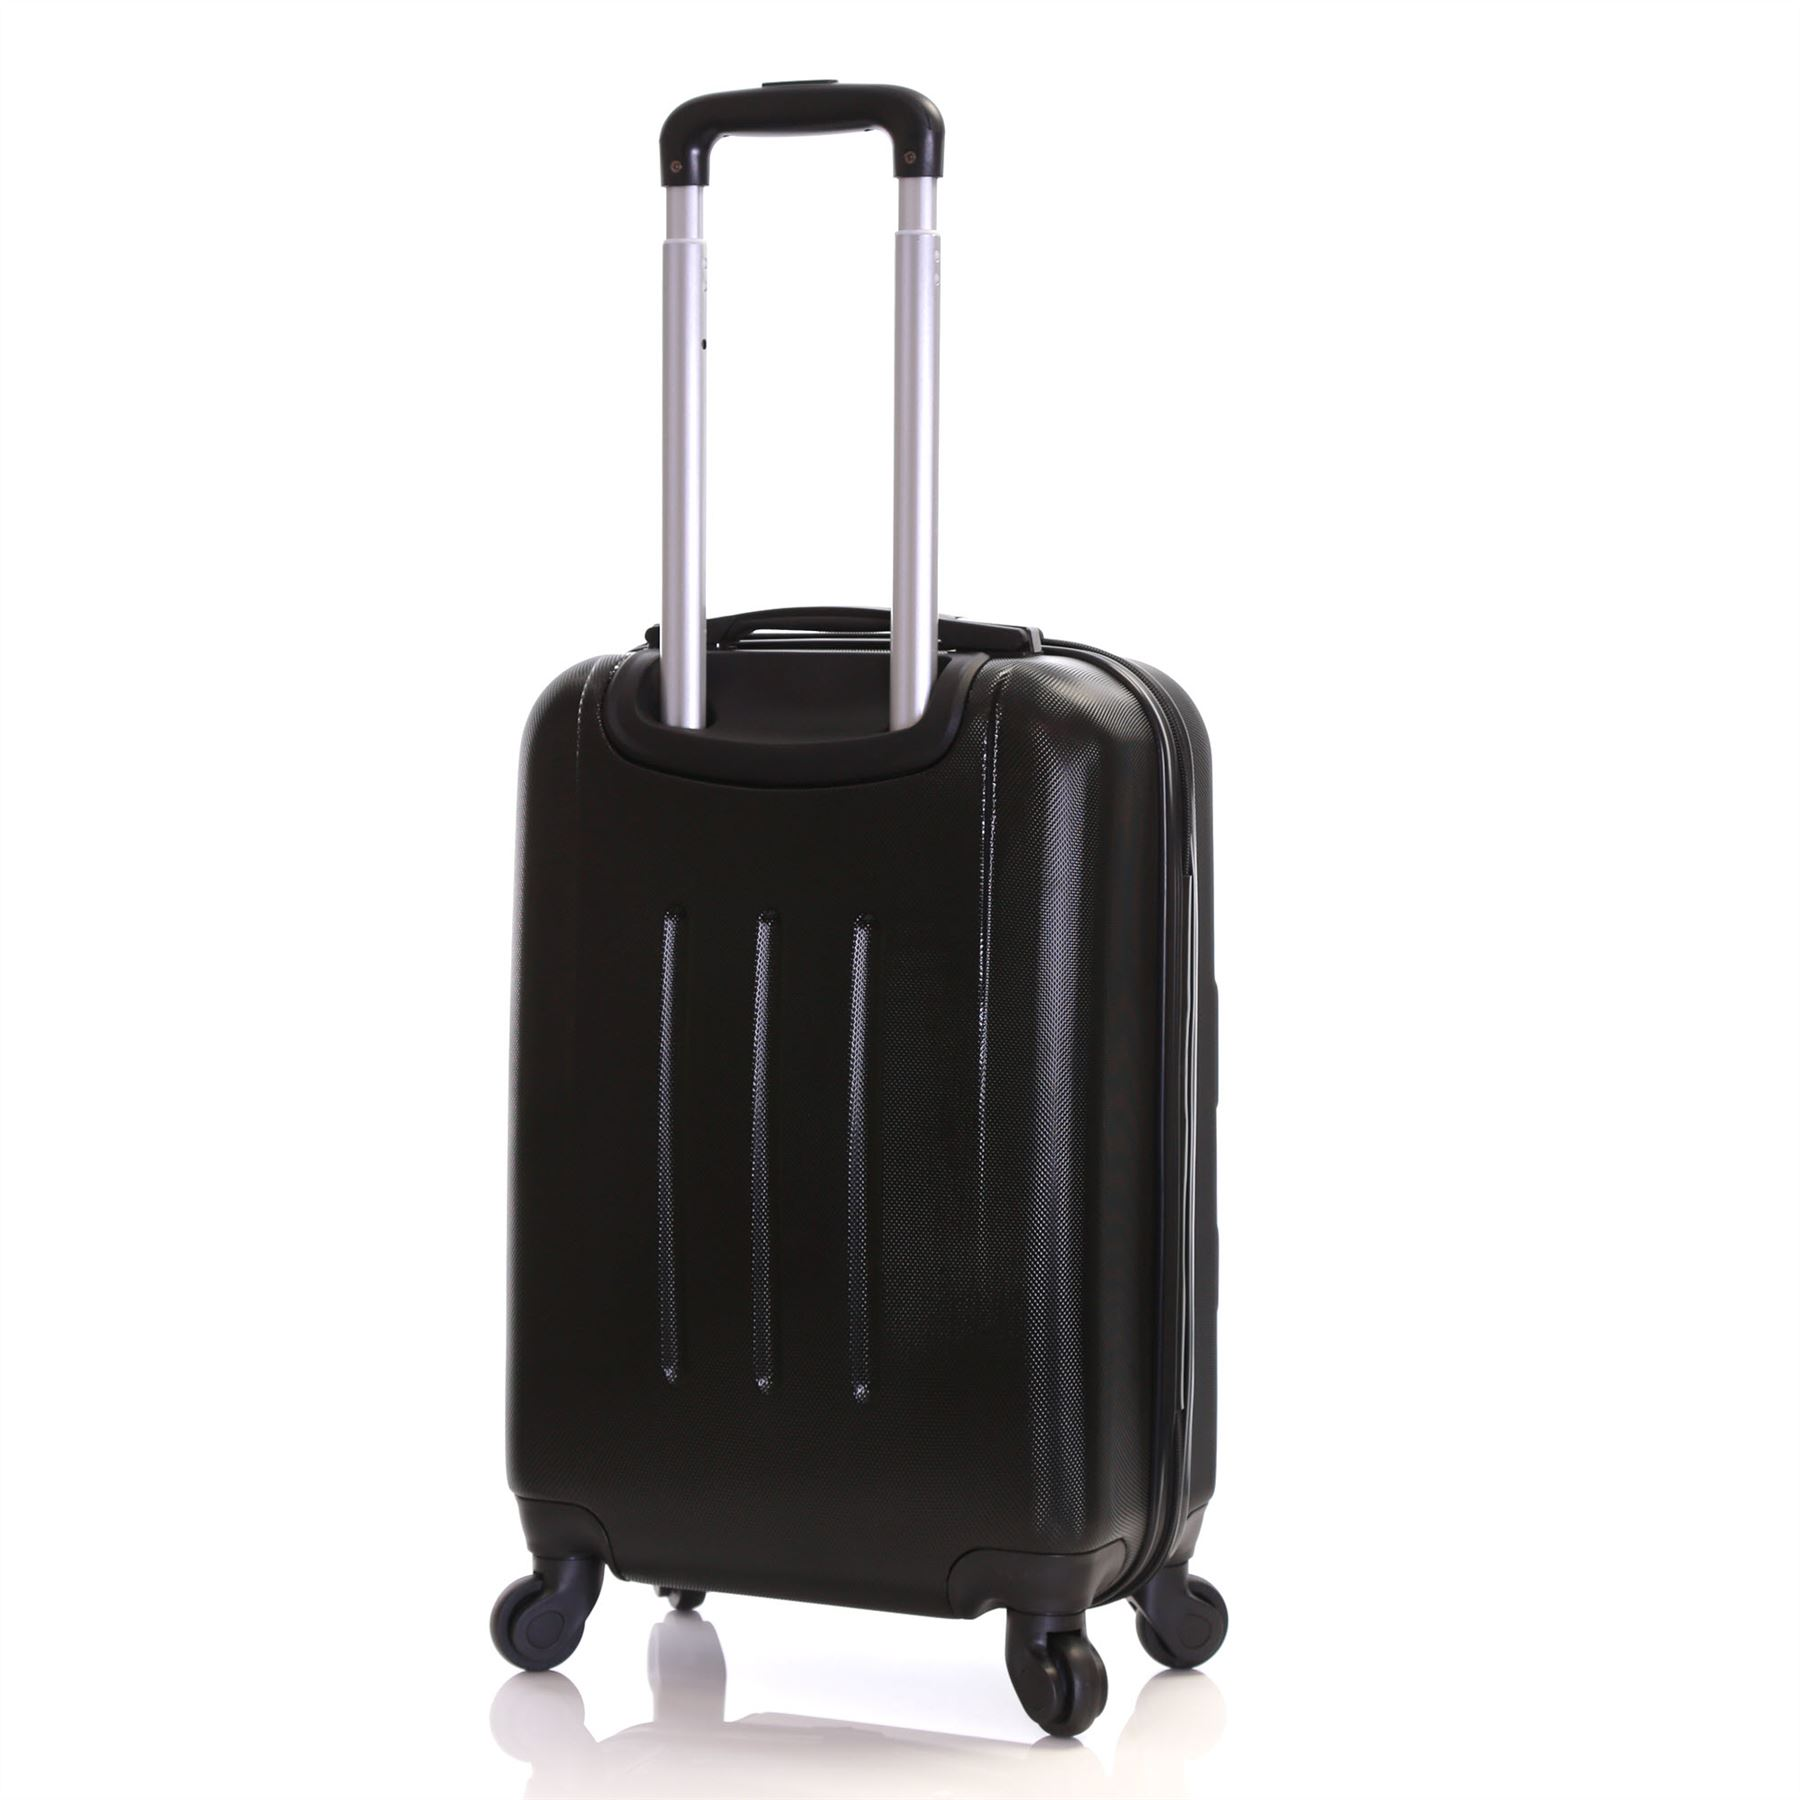 ryanair dur 55 cm cabine approuv spinner trolley bagages main valise sac tui ebay. Black Bedroom Furniture Sets. Home Design Ideas